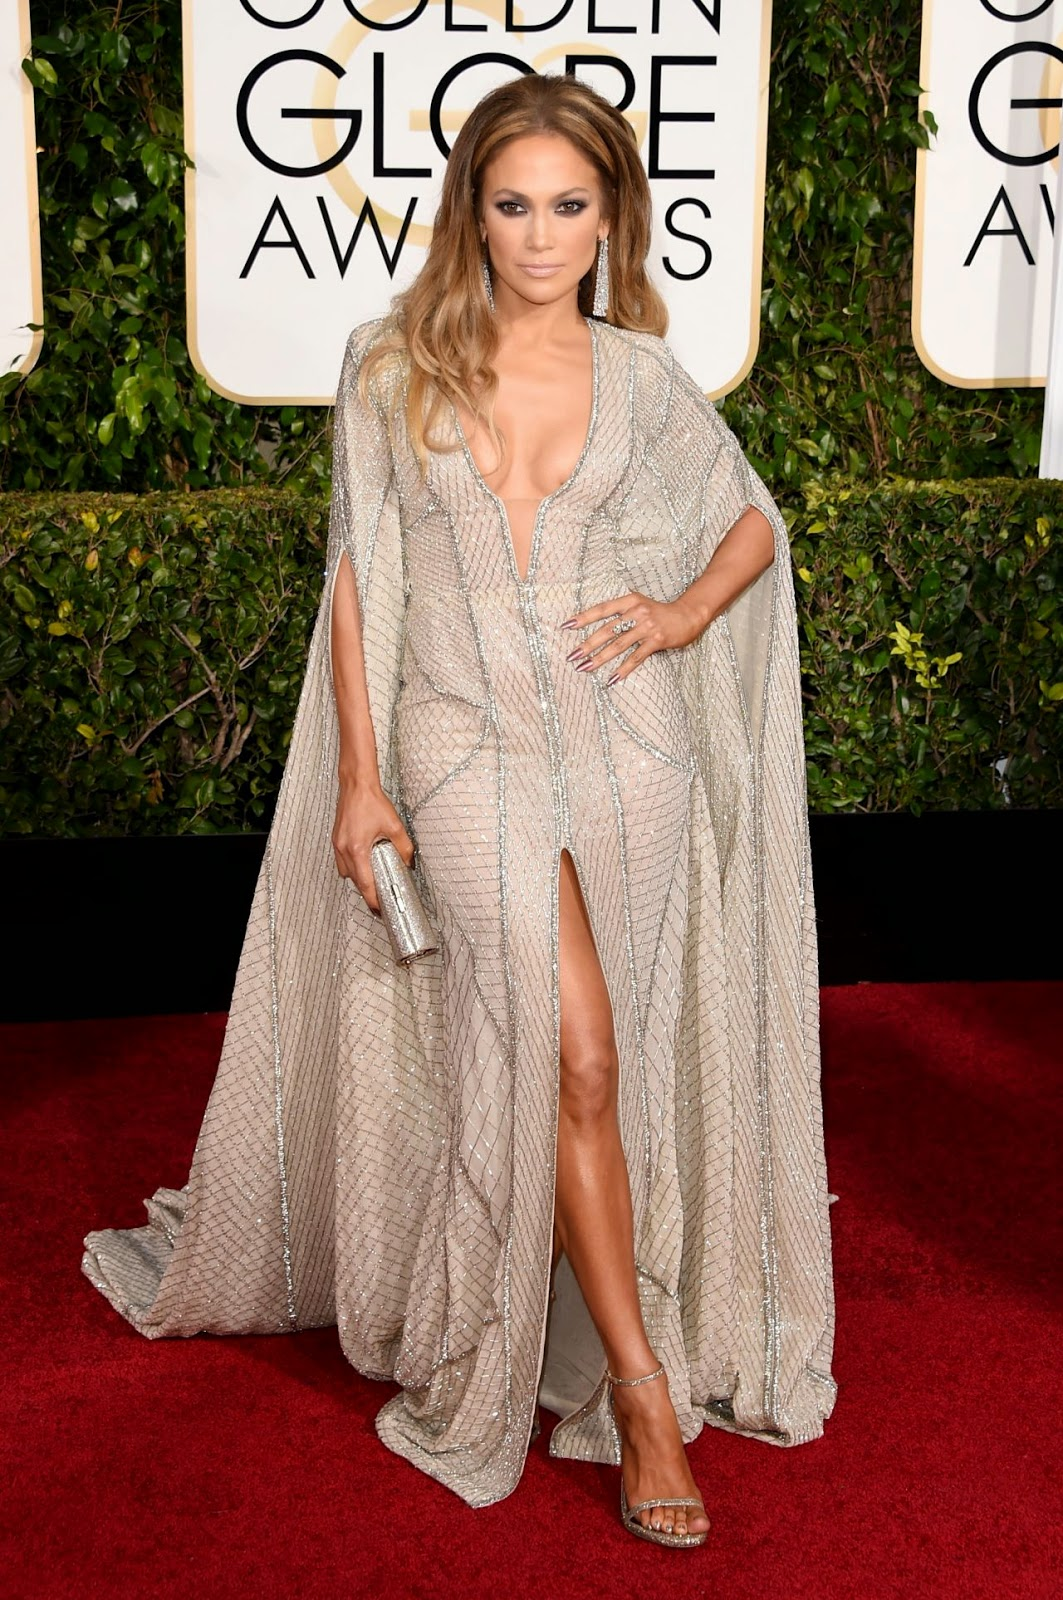 Jennifer Lopez shows off cleavage at the 2015 Golden Globe Awards